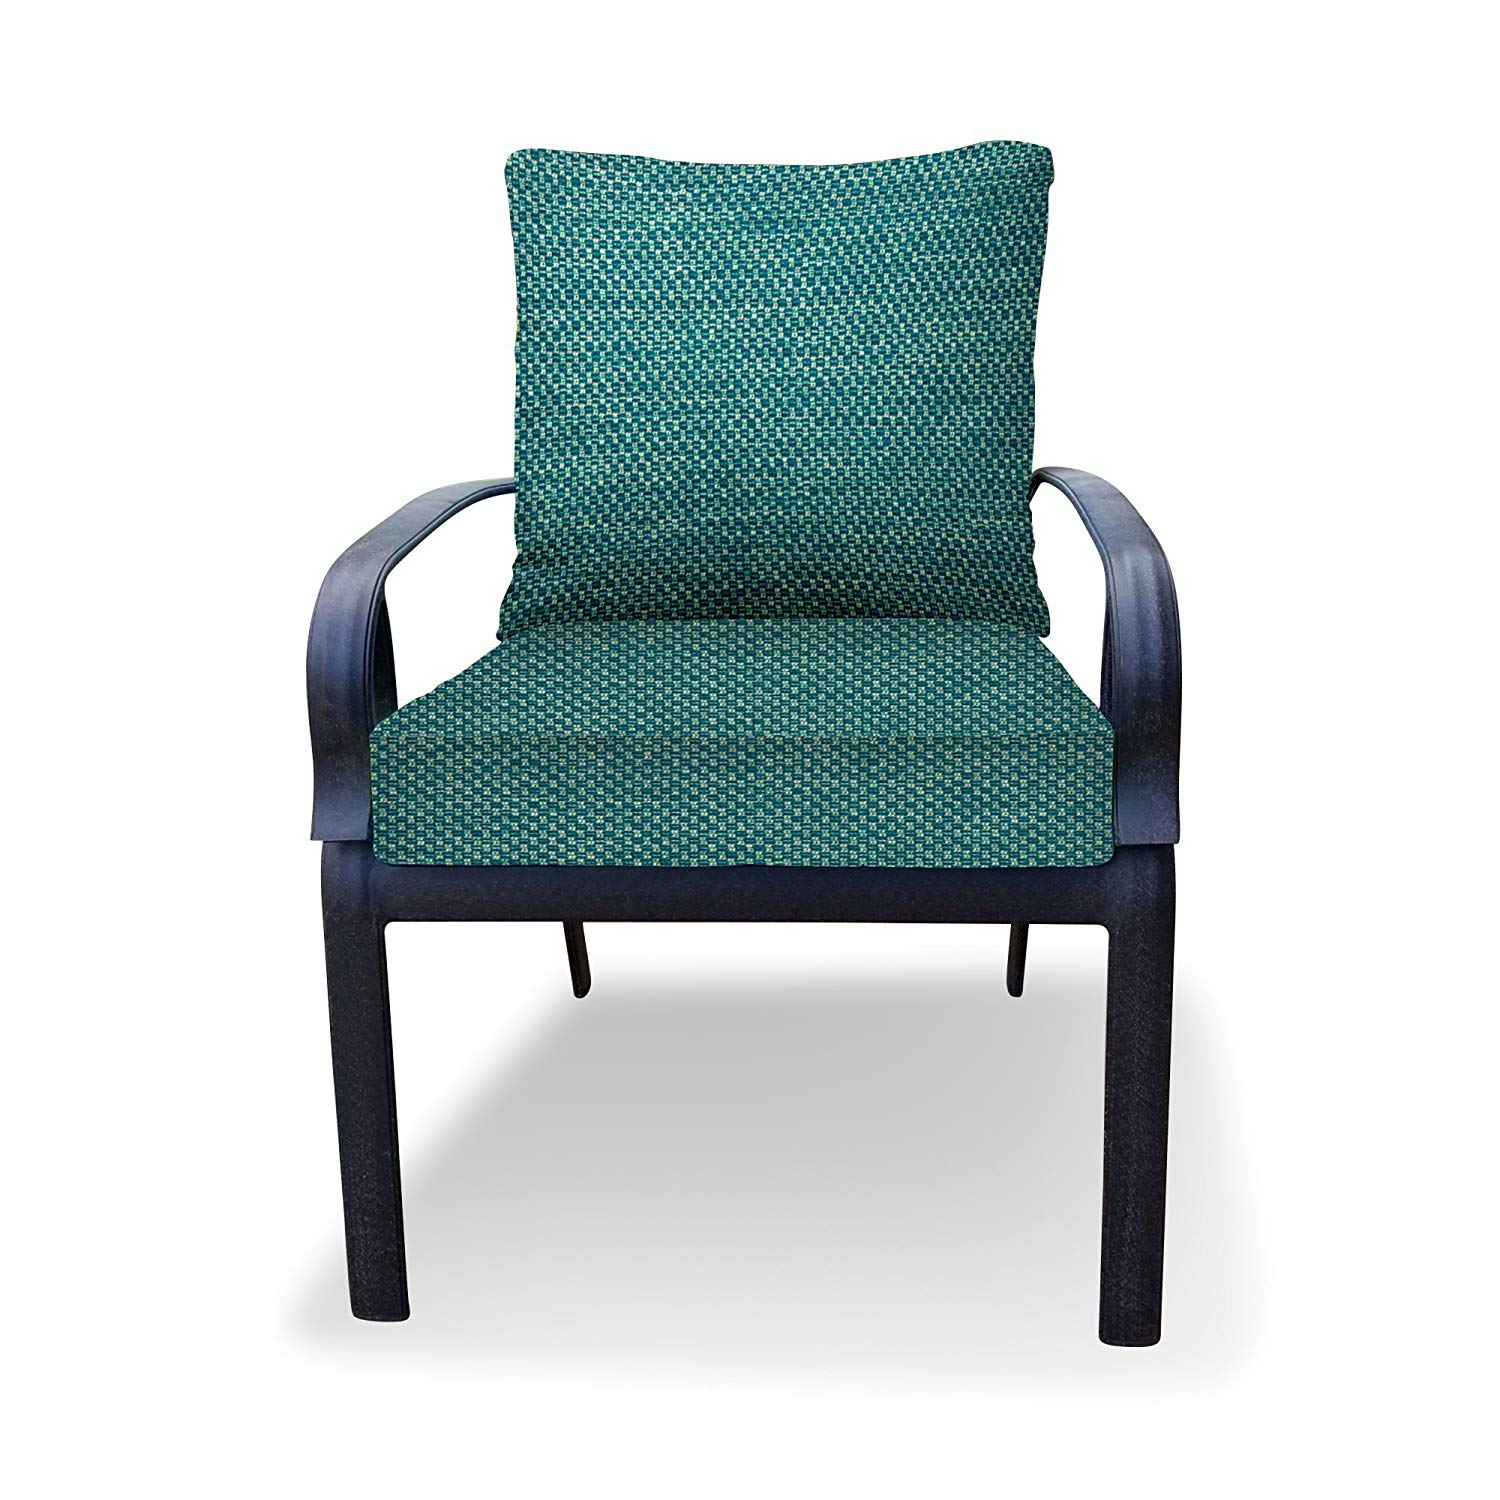 Thomas Collection Outdoor Cushions, Teal Patio Cushions, Sofa Loveseat Cushions, One Seat Cushion & One Back Pillow, Made in US, 13043